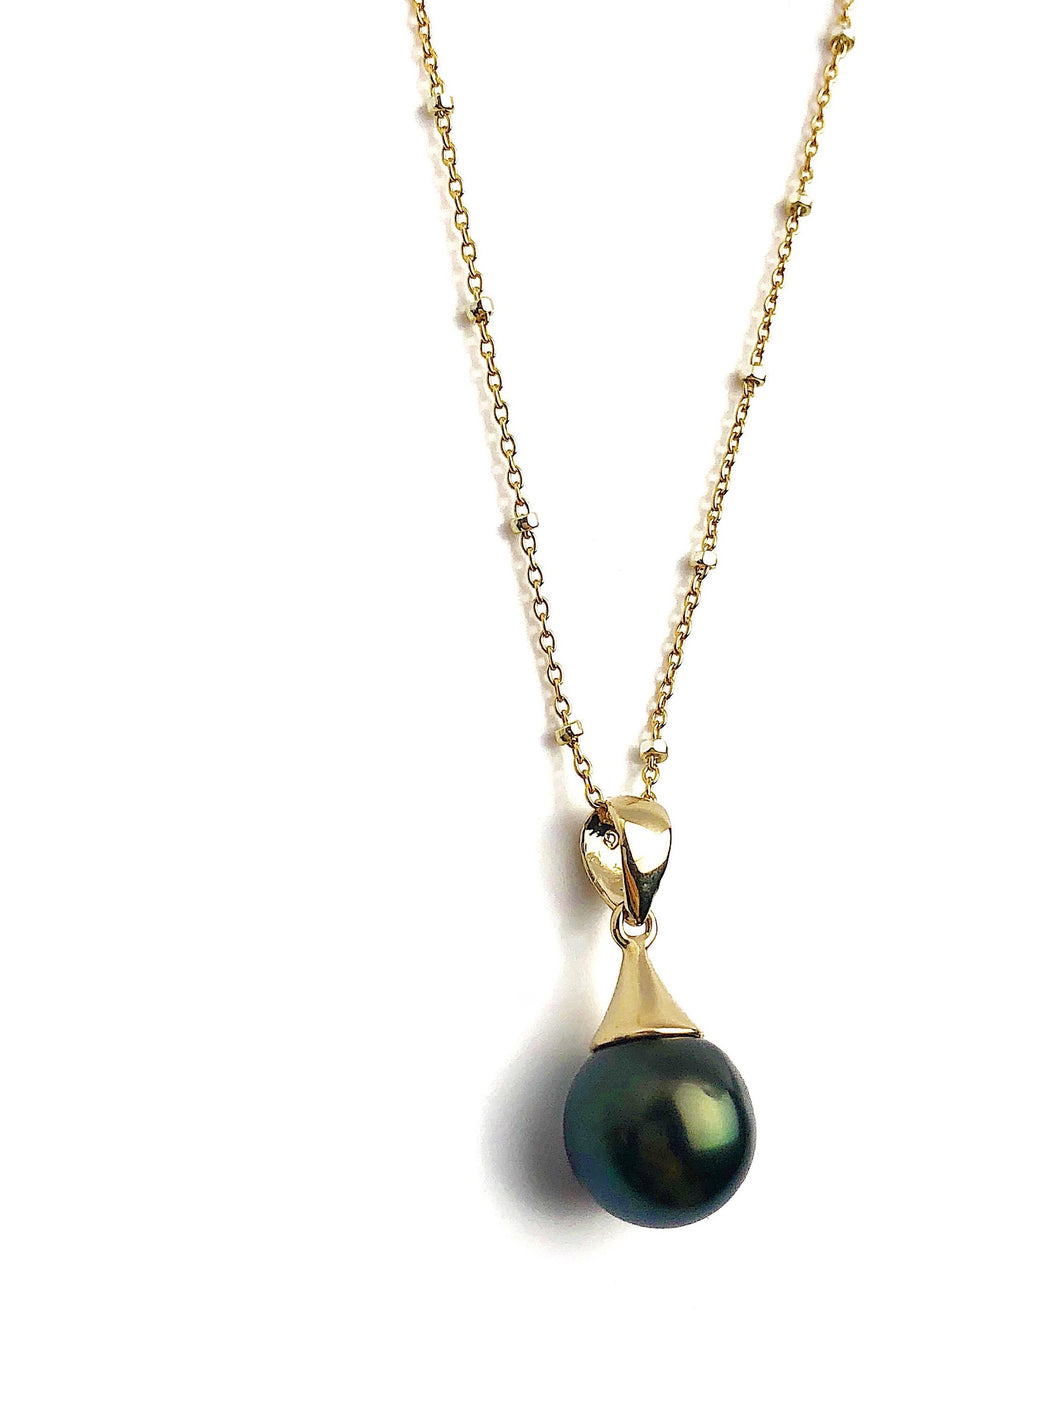 Pearl Pendant Setting - 14K Yellow Gold - Setting only - No pearl included. TP-241/14KGF